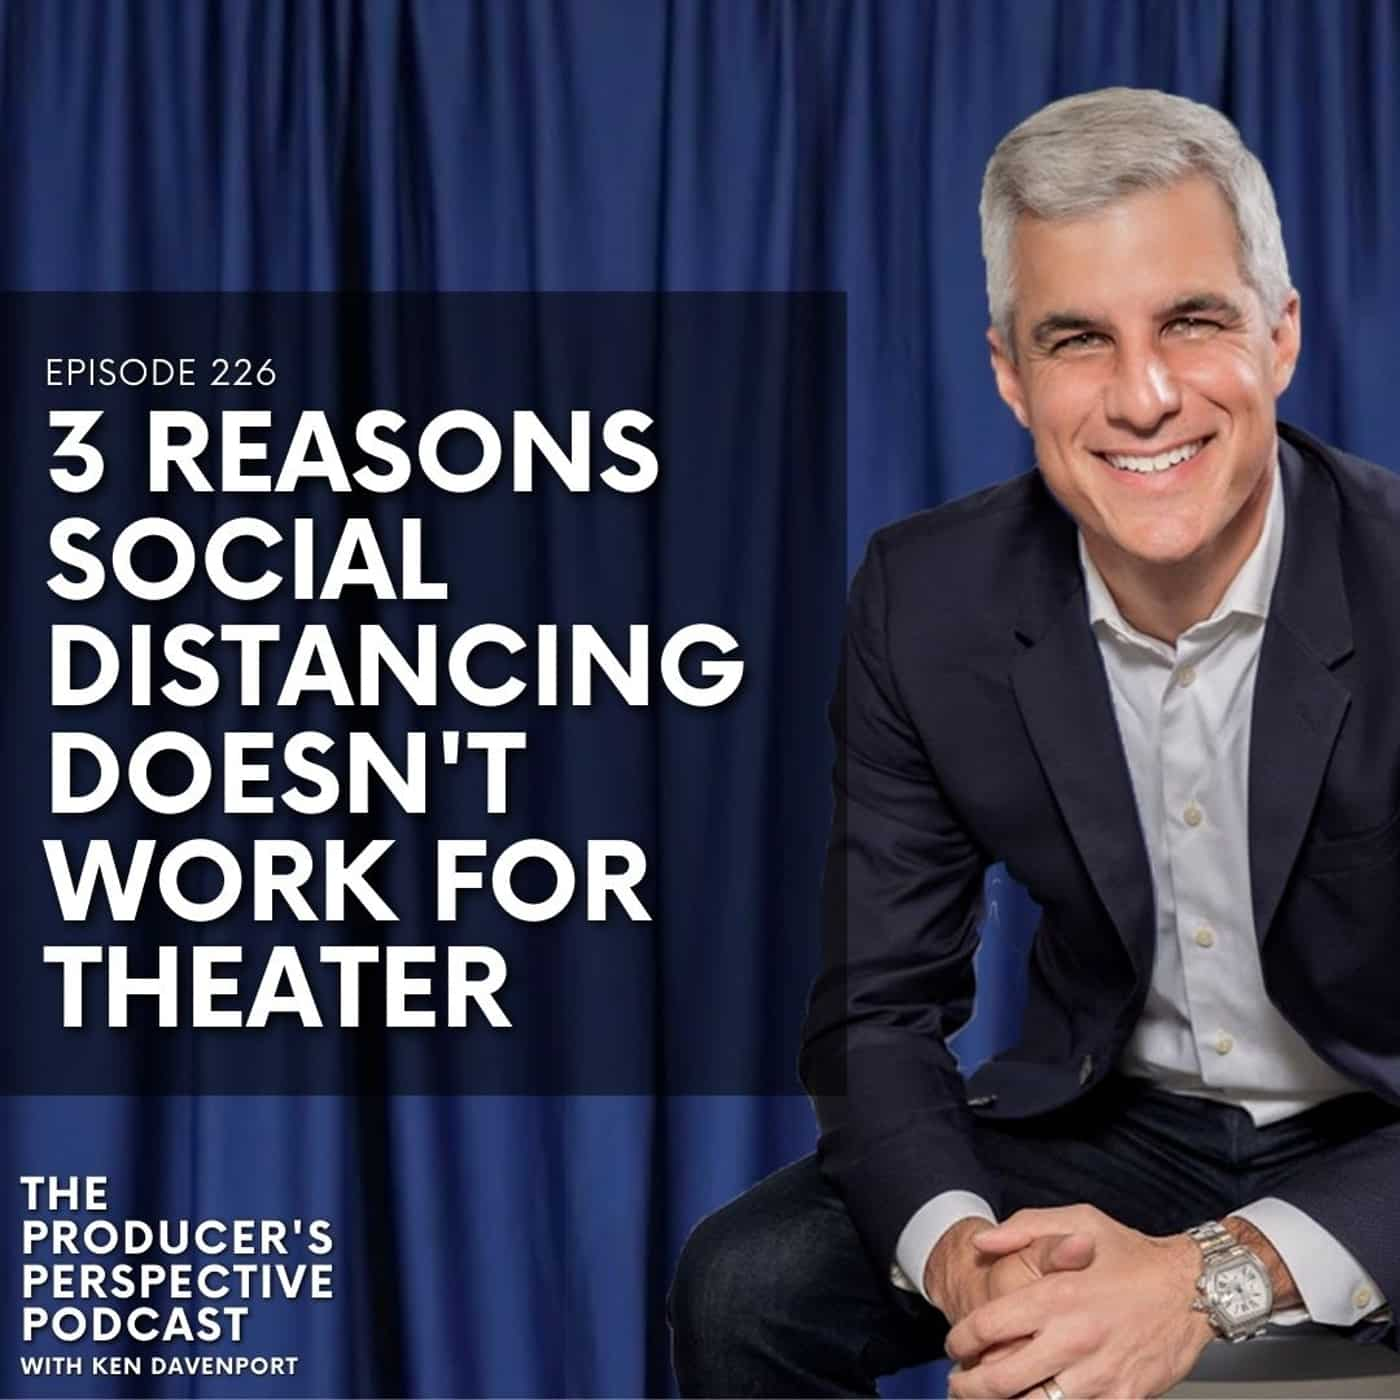 226 - 3 Reasons Social Distancing Doesn't Work For Theater